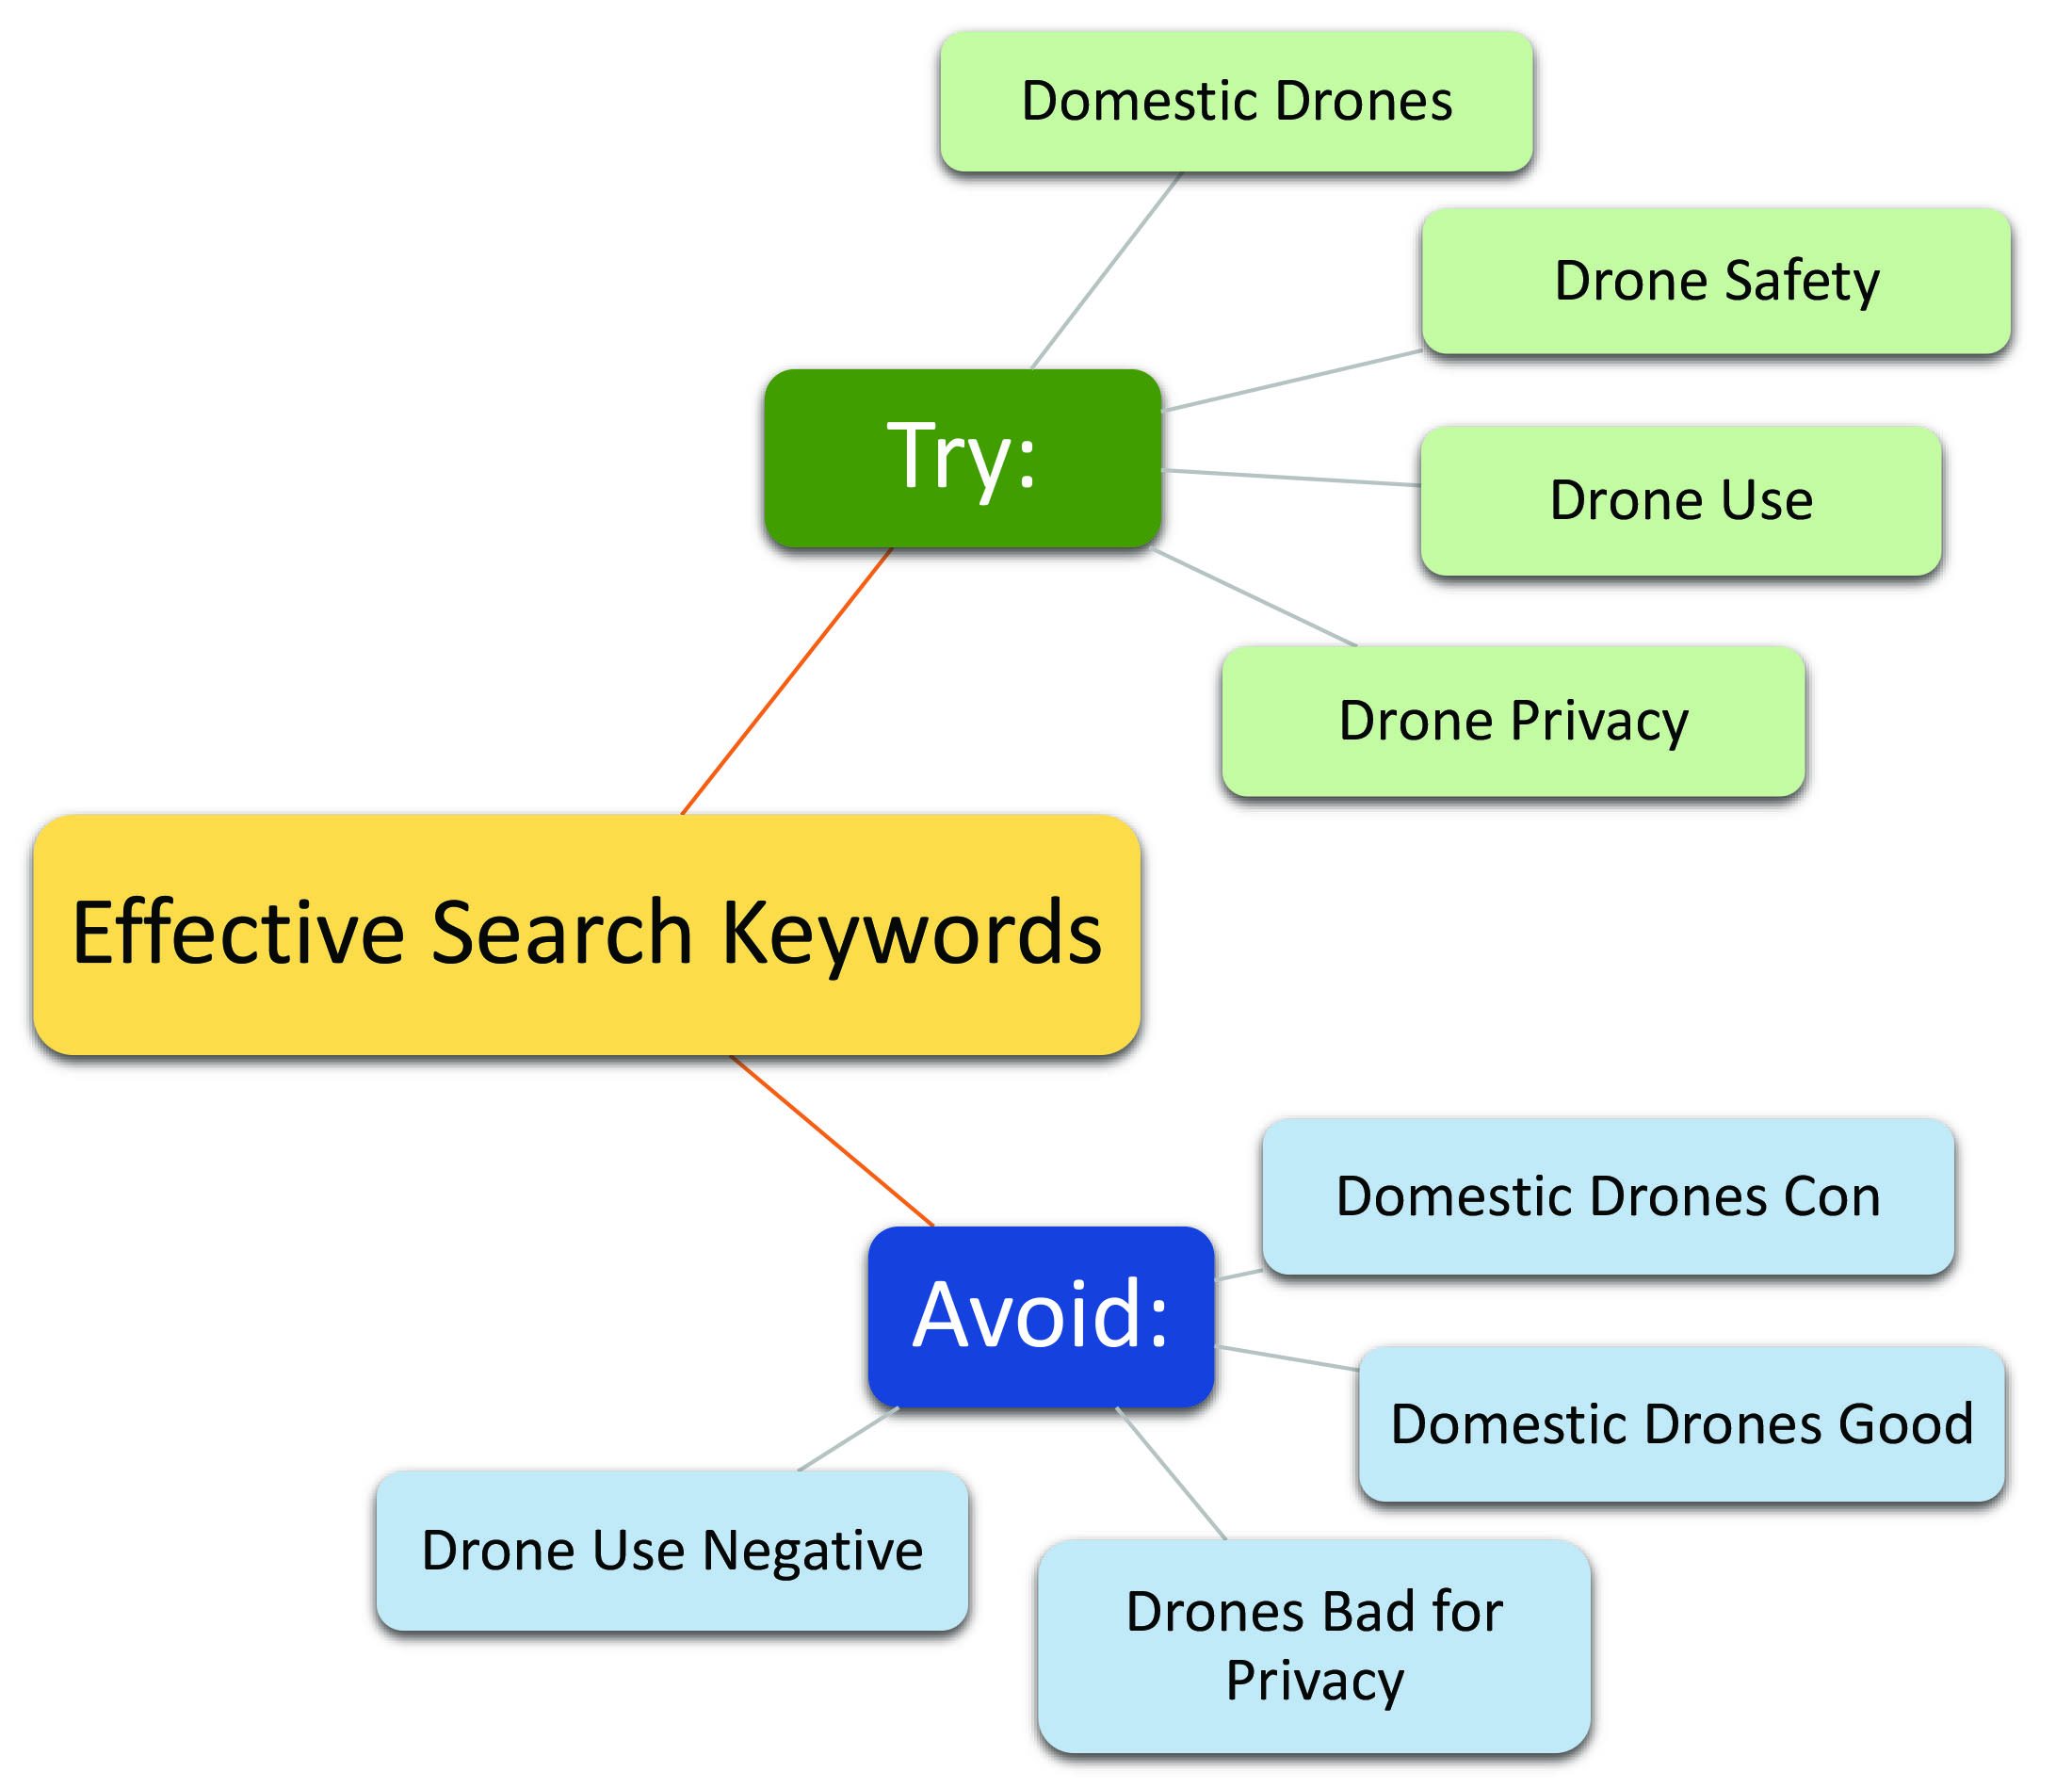 An image showing effective search keywords.